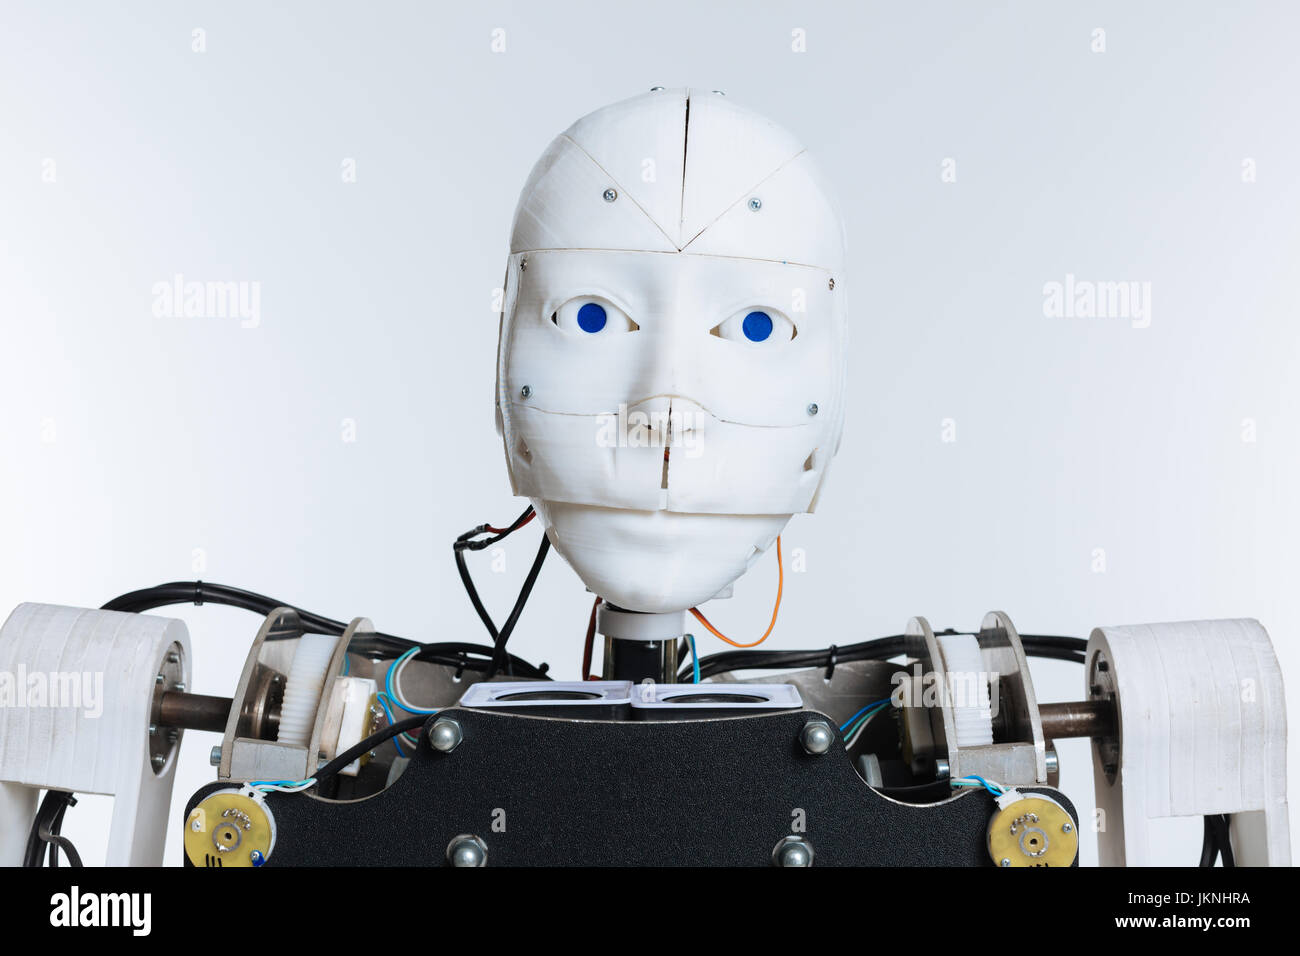 Portrait of a sophisticated robot - Stock Image